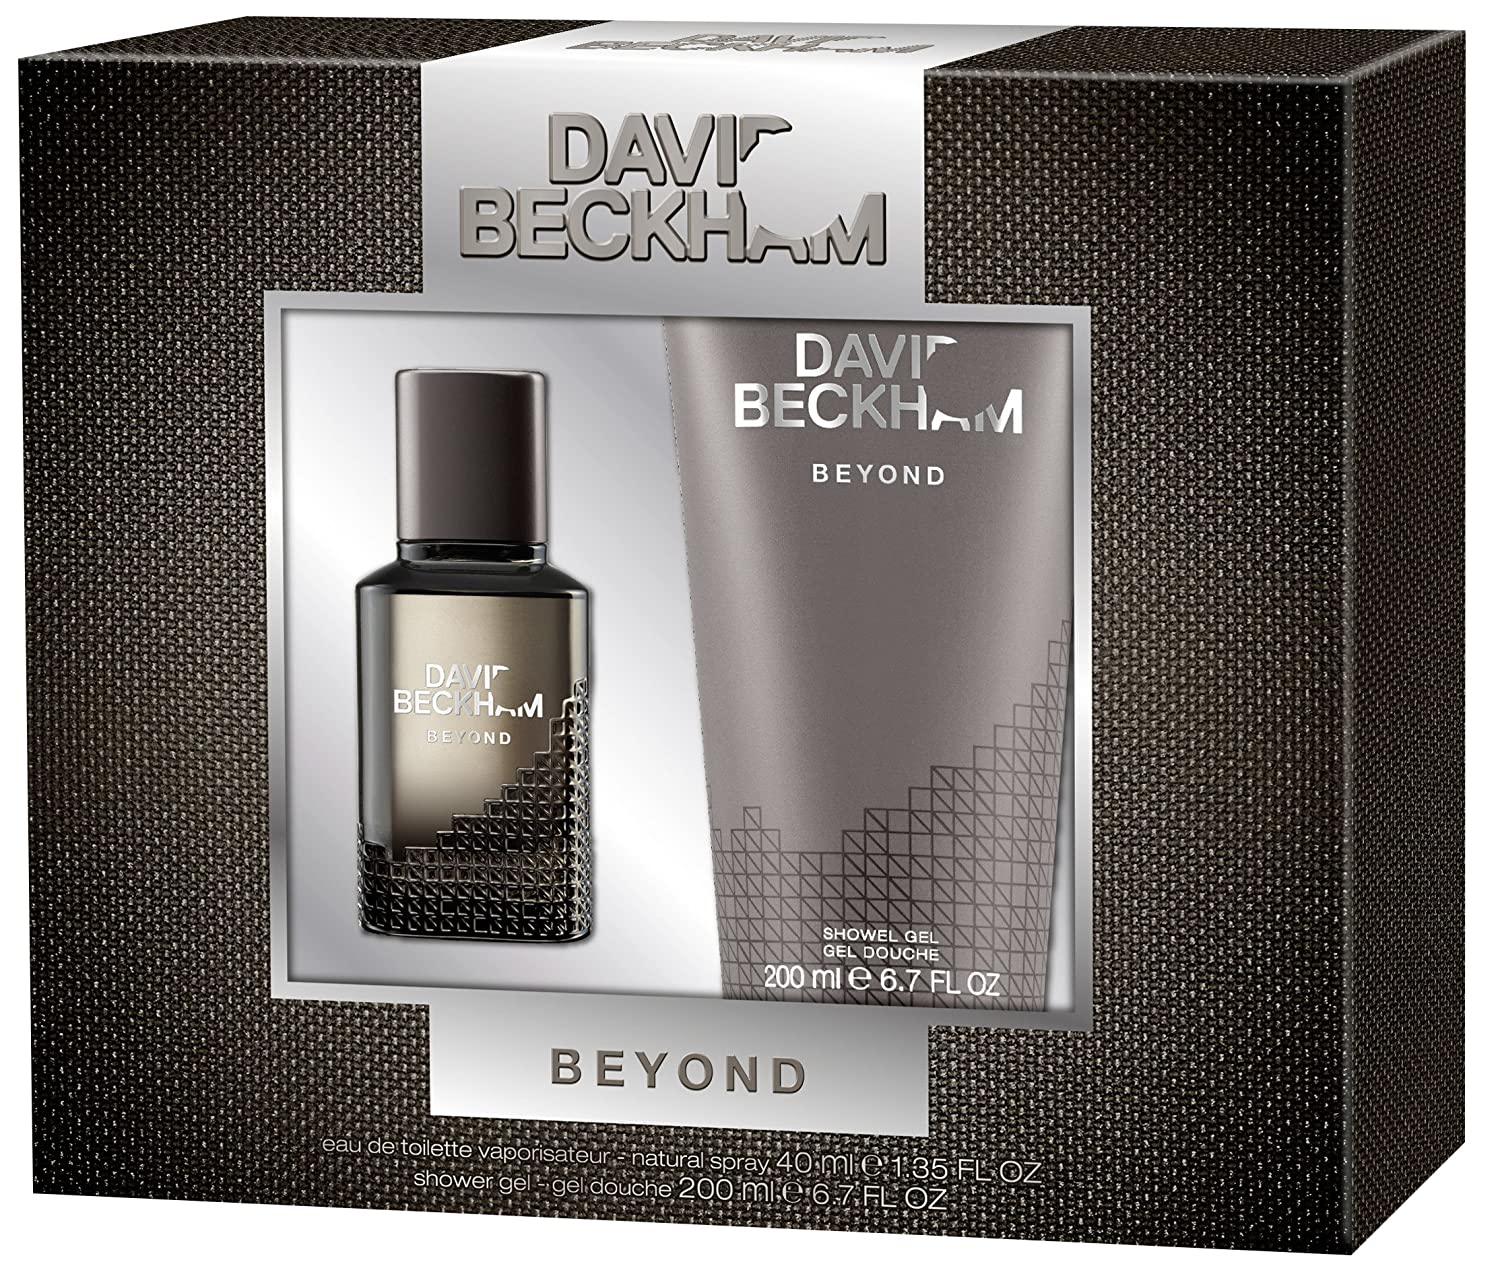 Beckham Beyond Eau de Toilette and Shower Gel Coty 32291010000